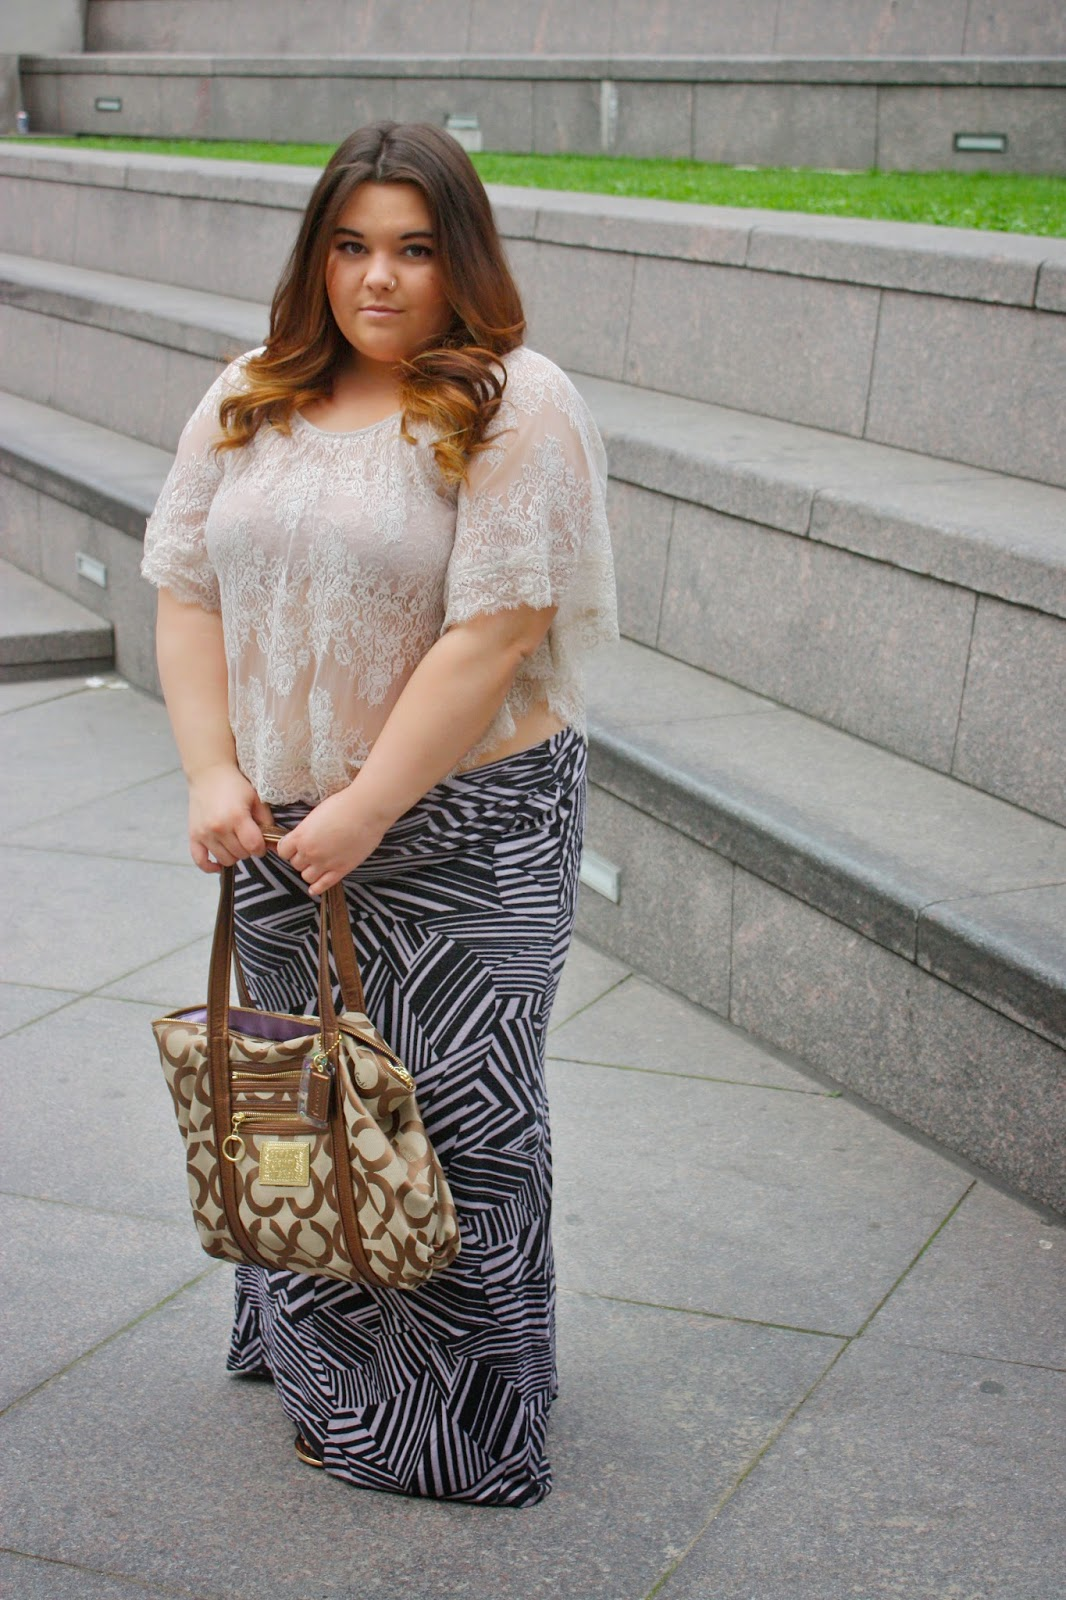 Natalie Craig, maxi skirt, plus size fashion blogger, plus size fashion, see through, bandeau, lace, urban outfitters, summer fashion, coach purse, target sandals, ombre, curly hair, chicago, natalie in the city, chicago river, columbia college chicago, ootd, style, fat girls, curvy fashion